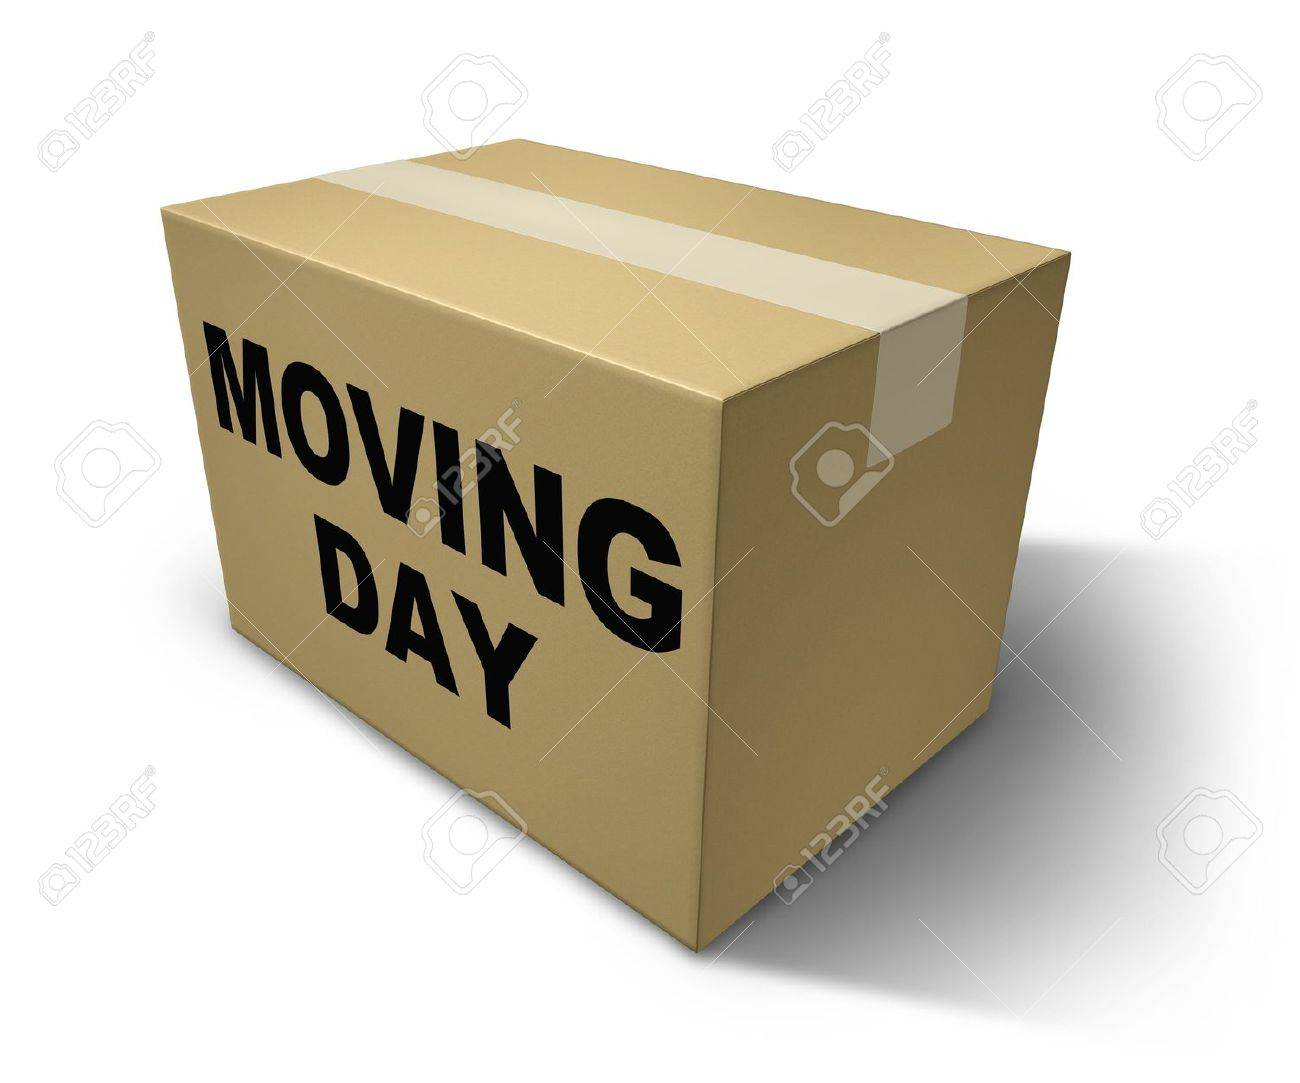 Moving day box representing movers and packaging for a move from one home to another Stock Photo - 10609220